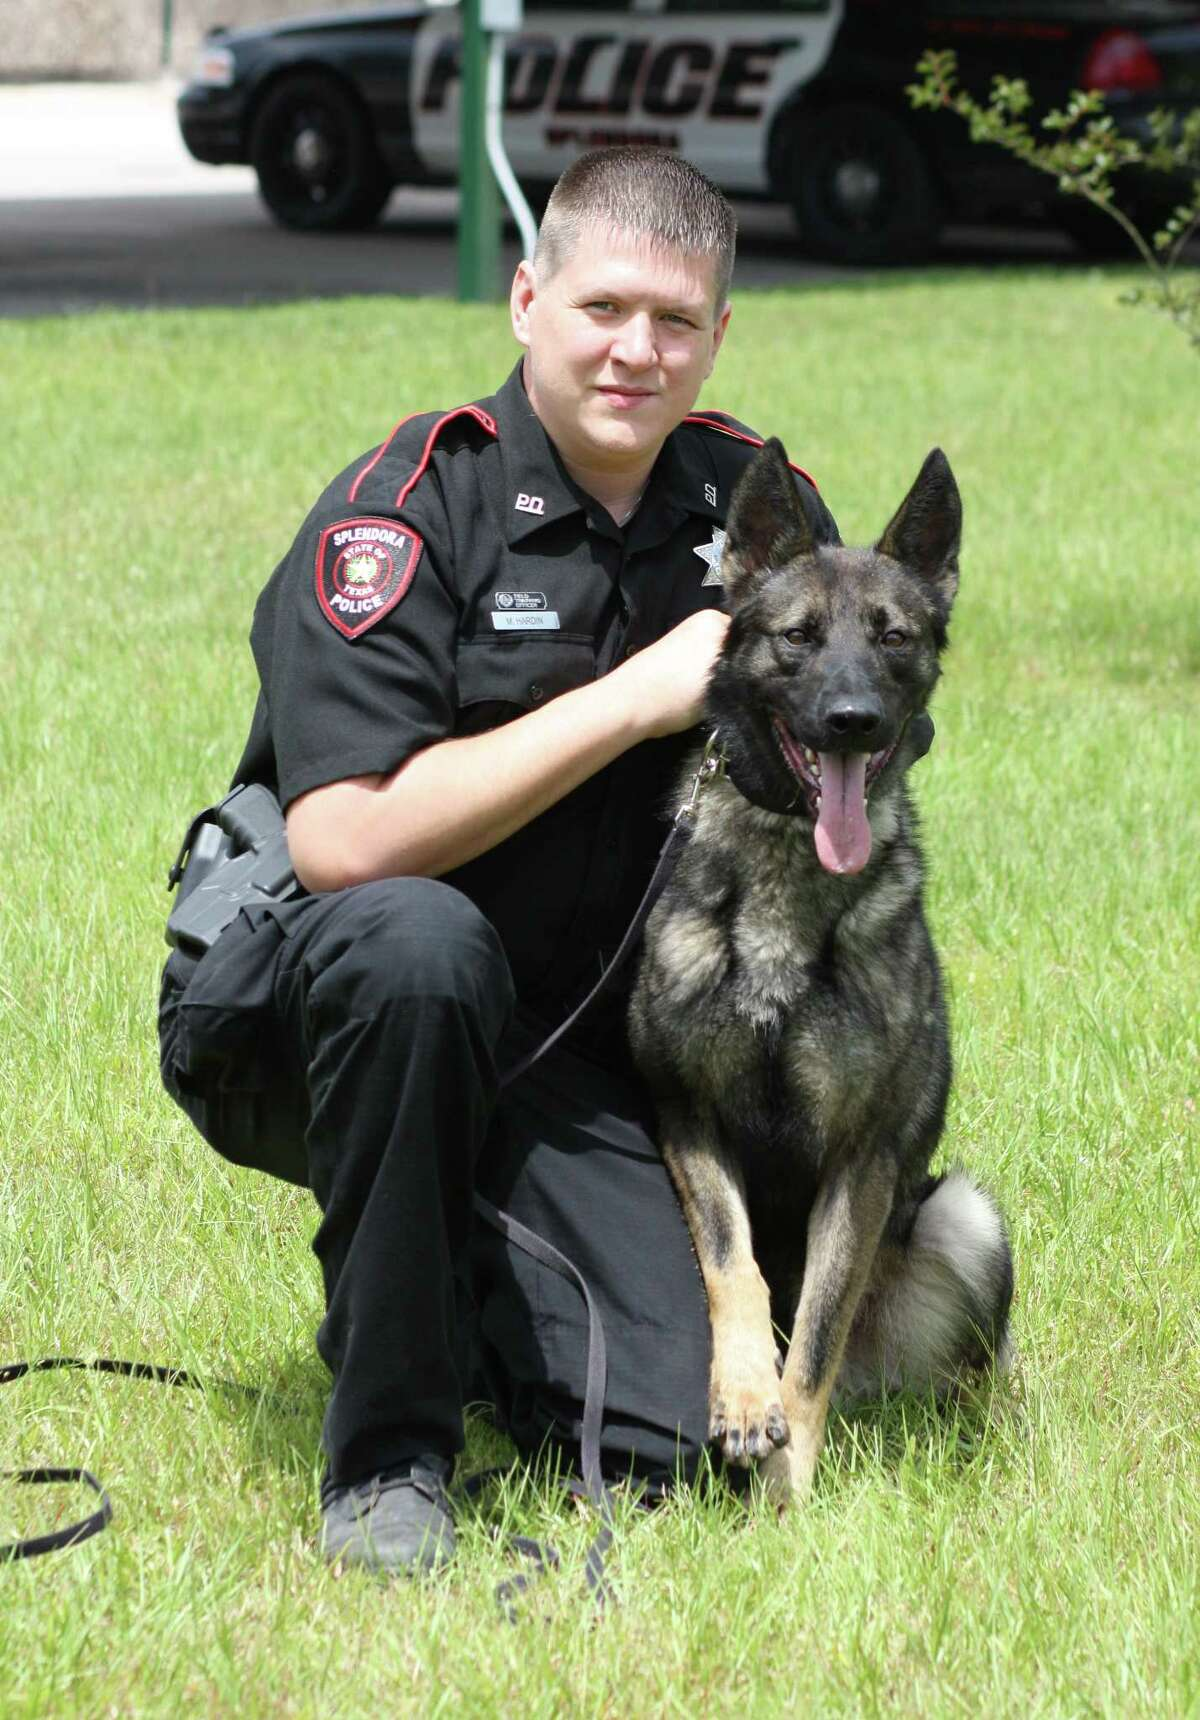 Ray Hardin is getting to know his new K-9 partner, A.D. The two have been paired up for just a week but will soon be patrolling Splendora together. A.D. is a Maliherd - a mixture of German Shepherd and Belgian Malinois that is often used for police dogs.